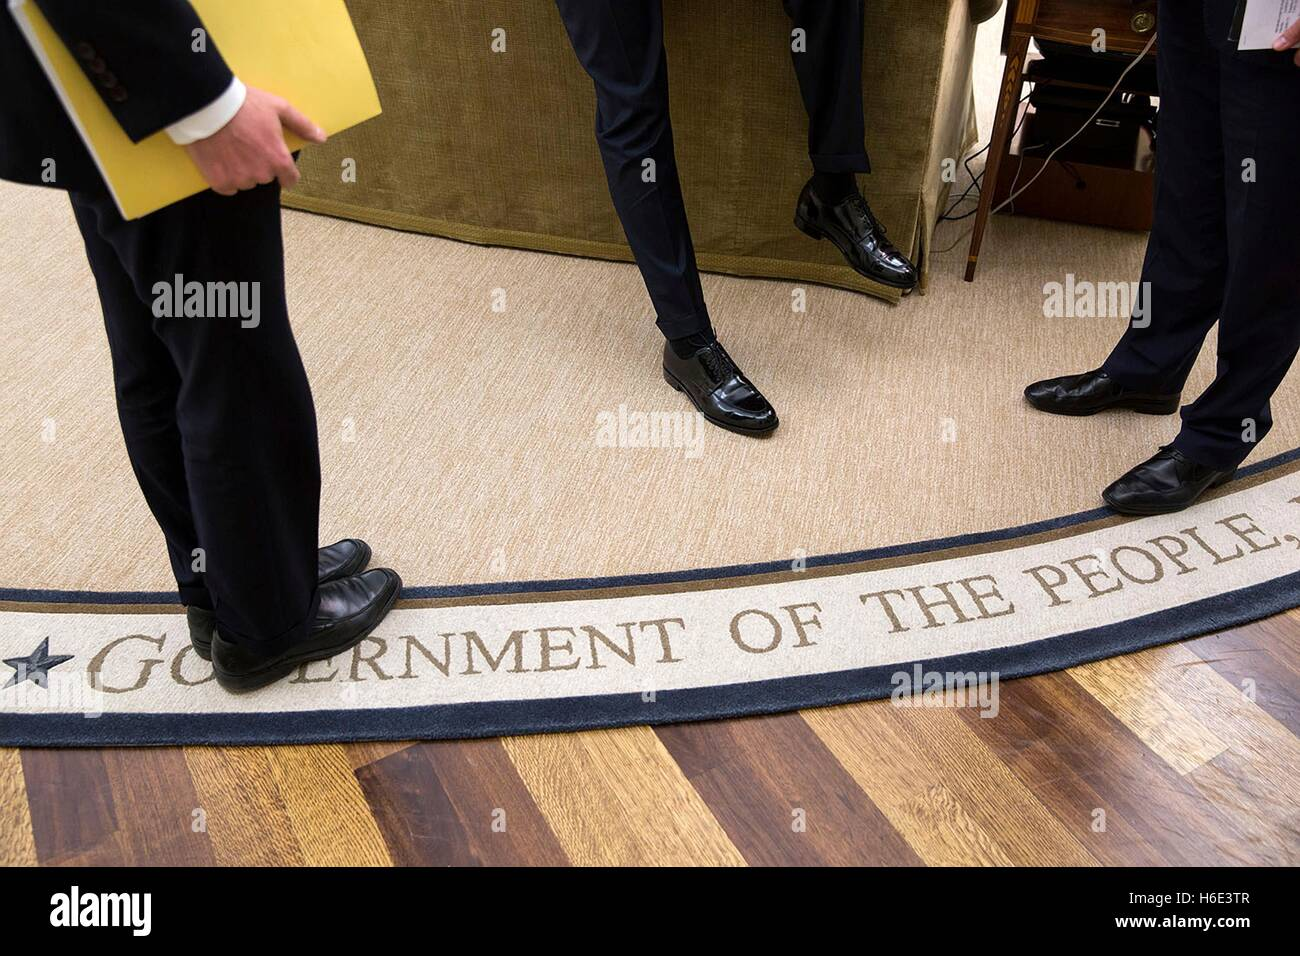 A view of the feet of U.S. President Barack Obama as he talks to senior advisors in the White House Oval Office - Stock Image